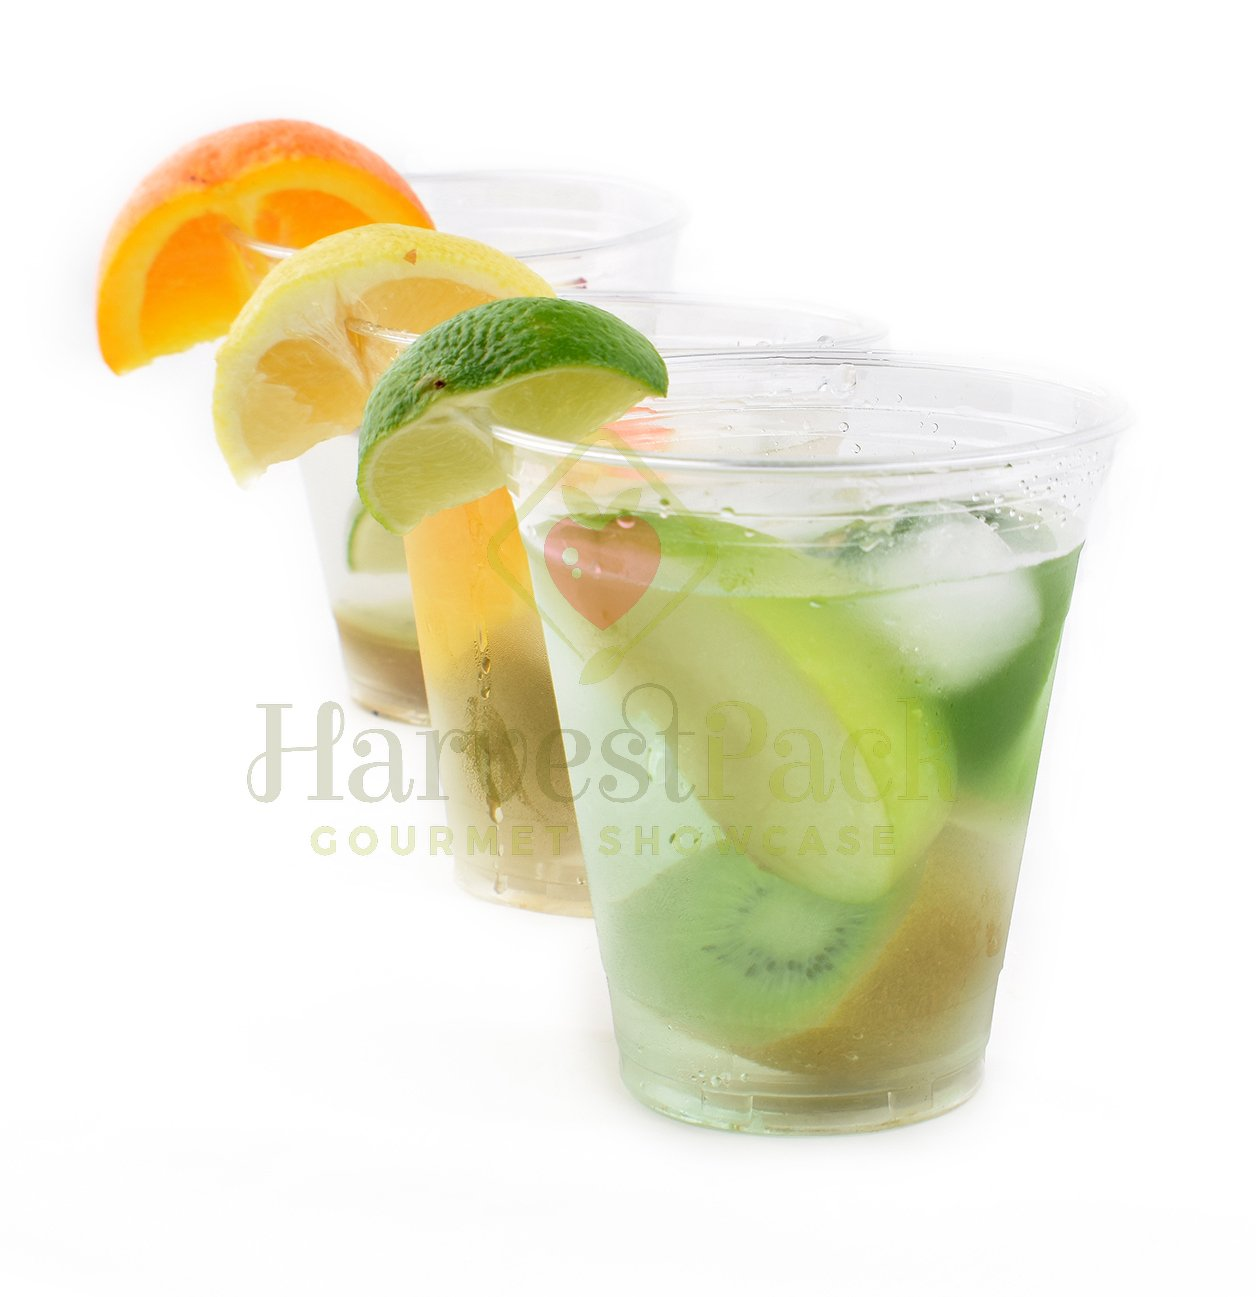 [1000 COUNT] 12oz Clear Plastic Disposable Cups - Premium 12 oz (ounces) Crystal Clear PET Cup (No Lids) for Cold Drinks Iced Coffee Tea Juices Smoothies Slush Soda Cocktails Beer Sundae Kids Safe by Harvest Pack (Image #1)